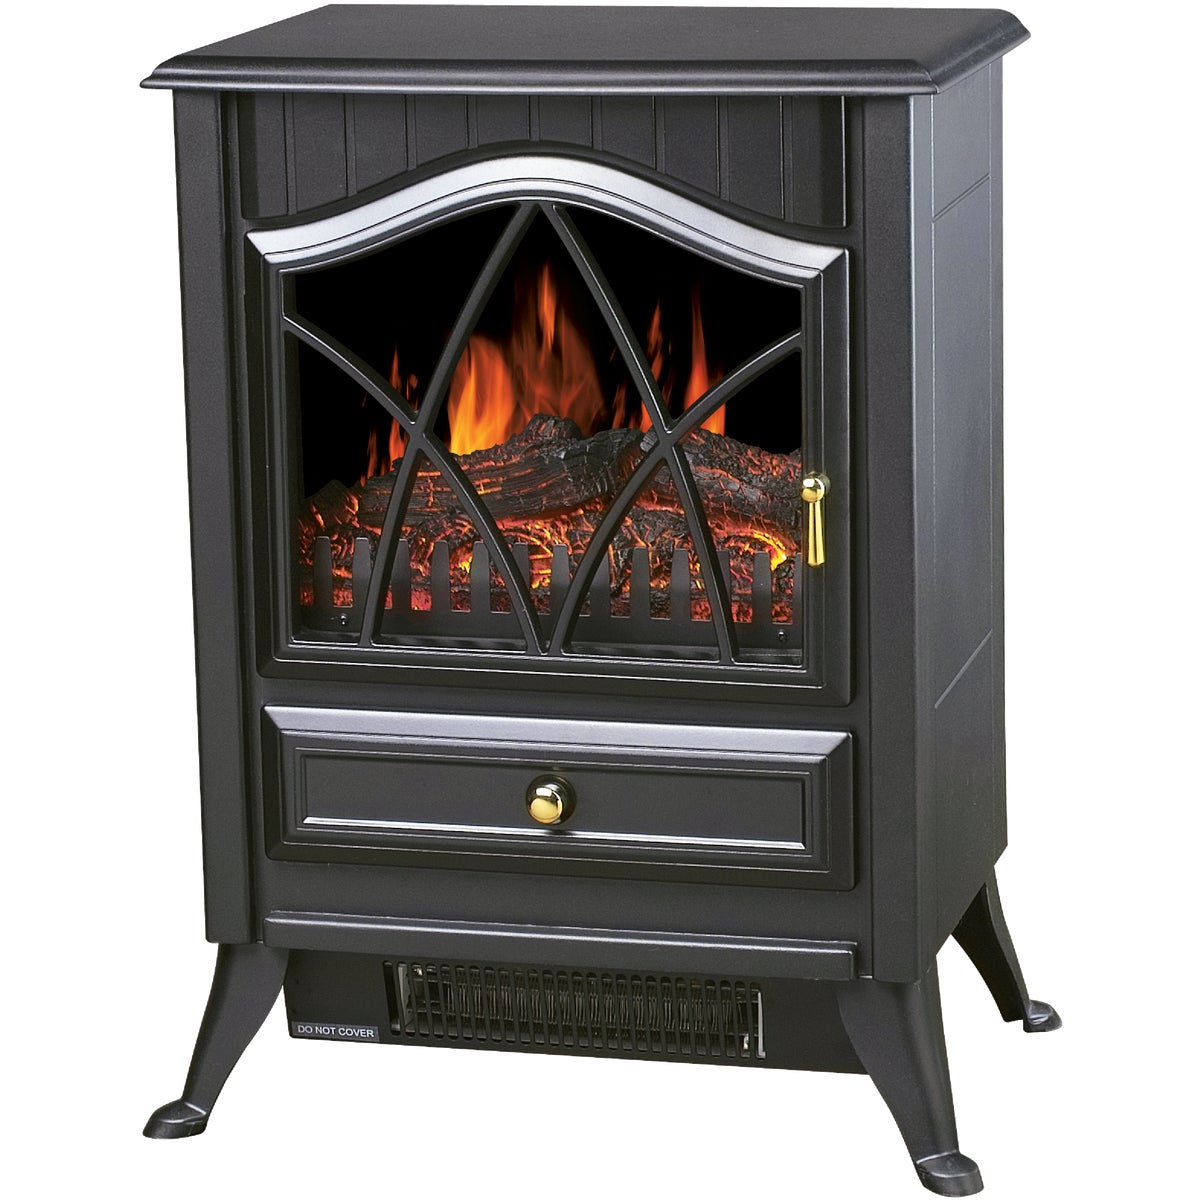 COMPACT ELECTRIC STOVE - ES4215 by World Marketing